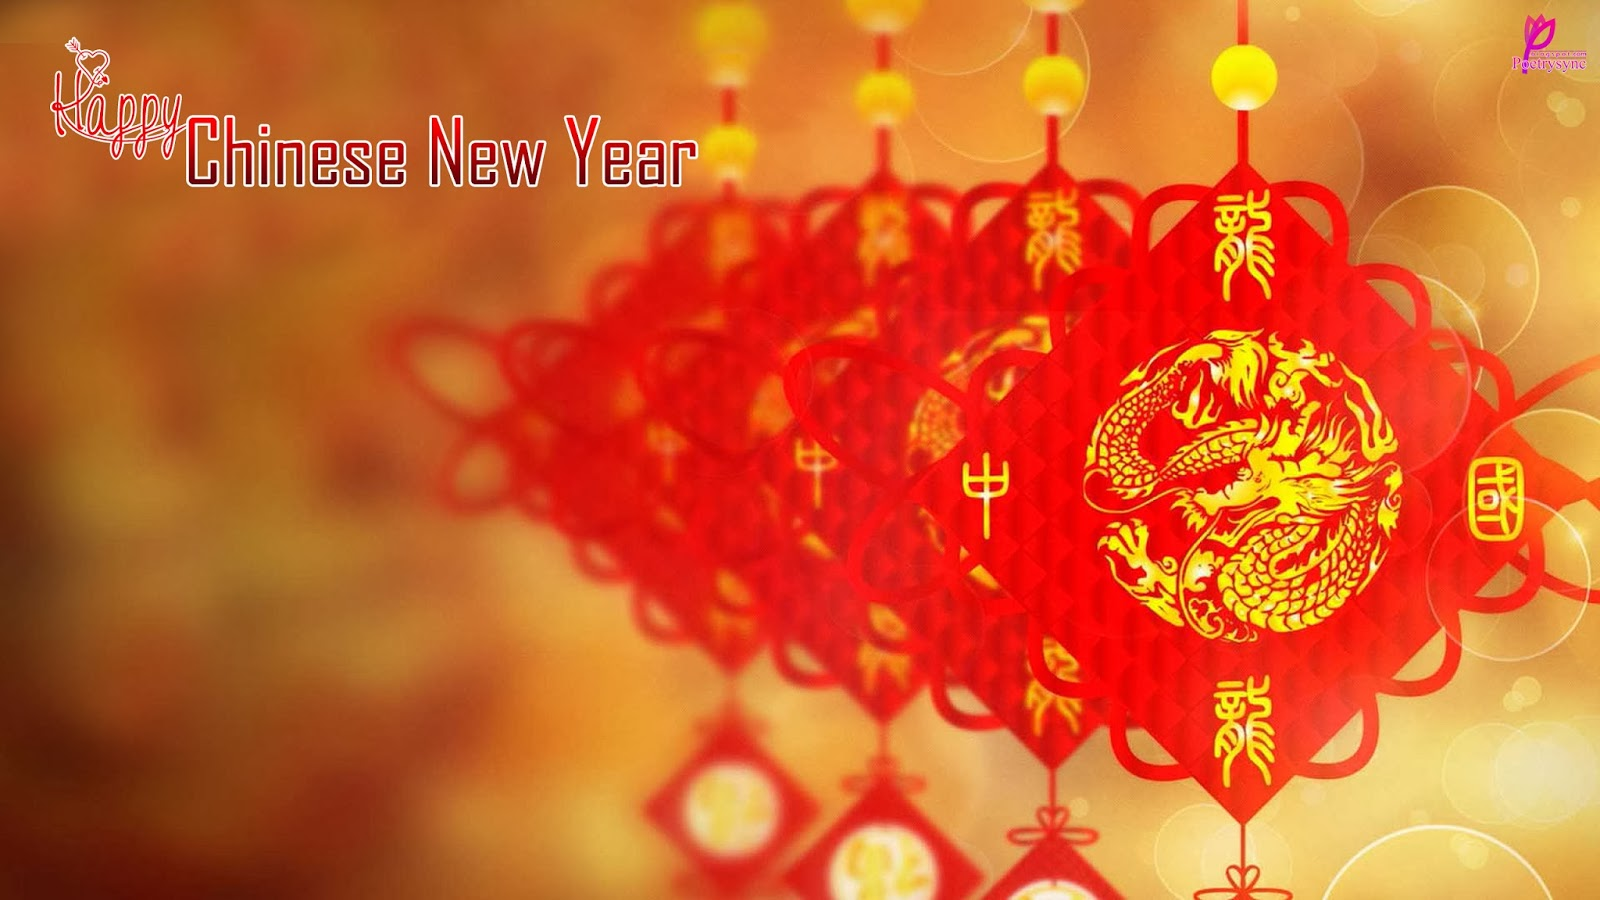 Happy Chinese New Year 2014 Images Happy Lunar New Year 2014 Wallpaper 1600x900